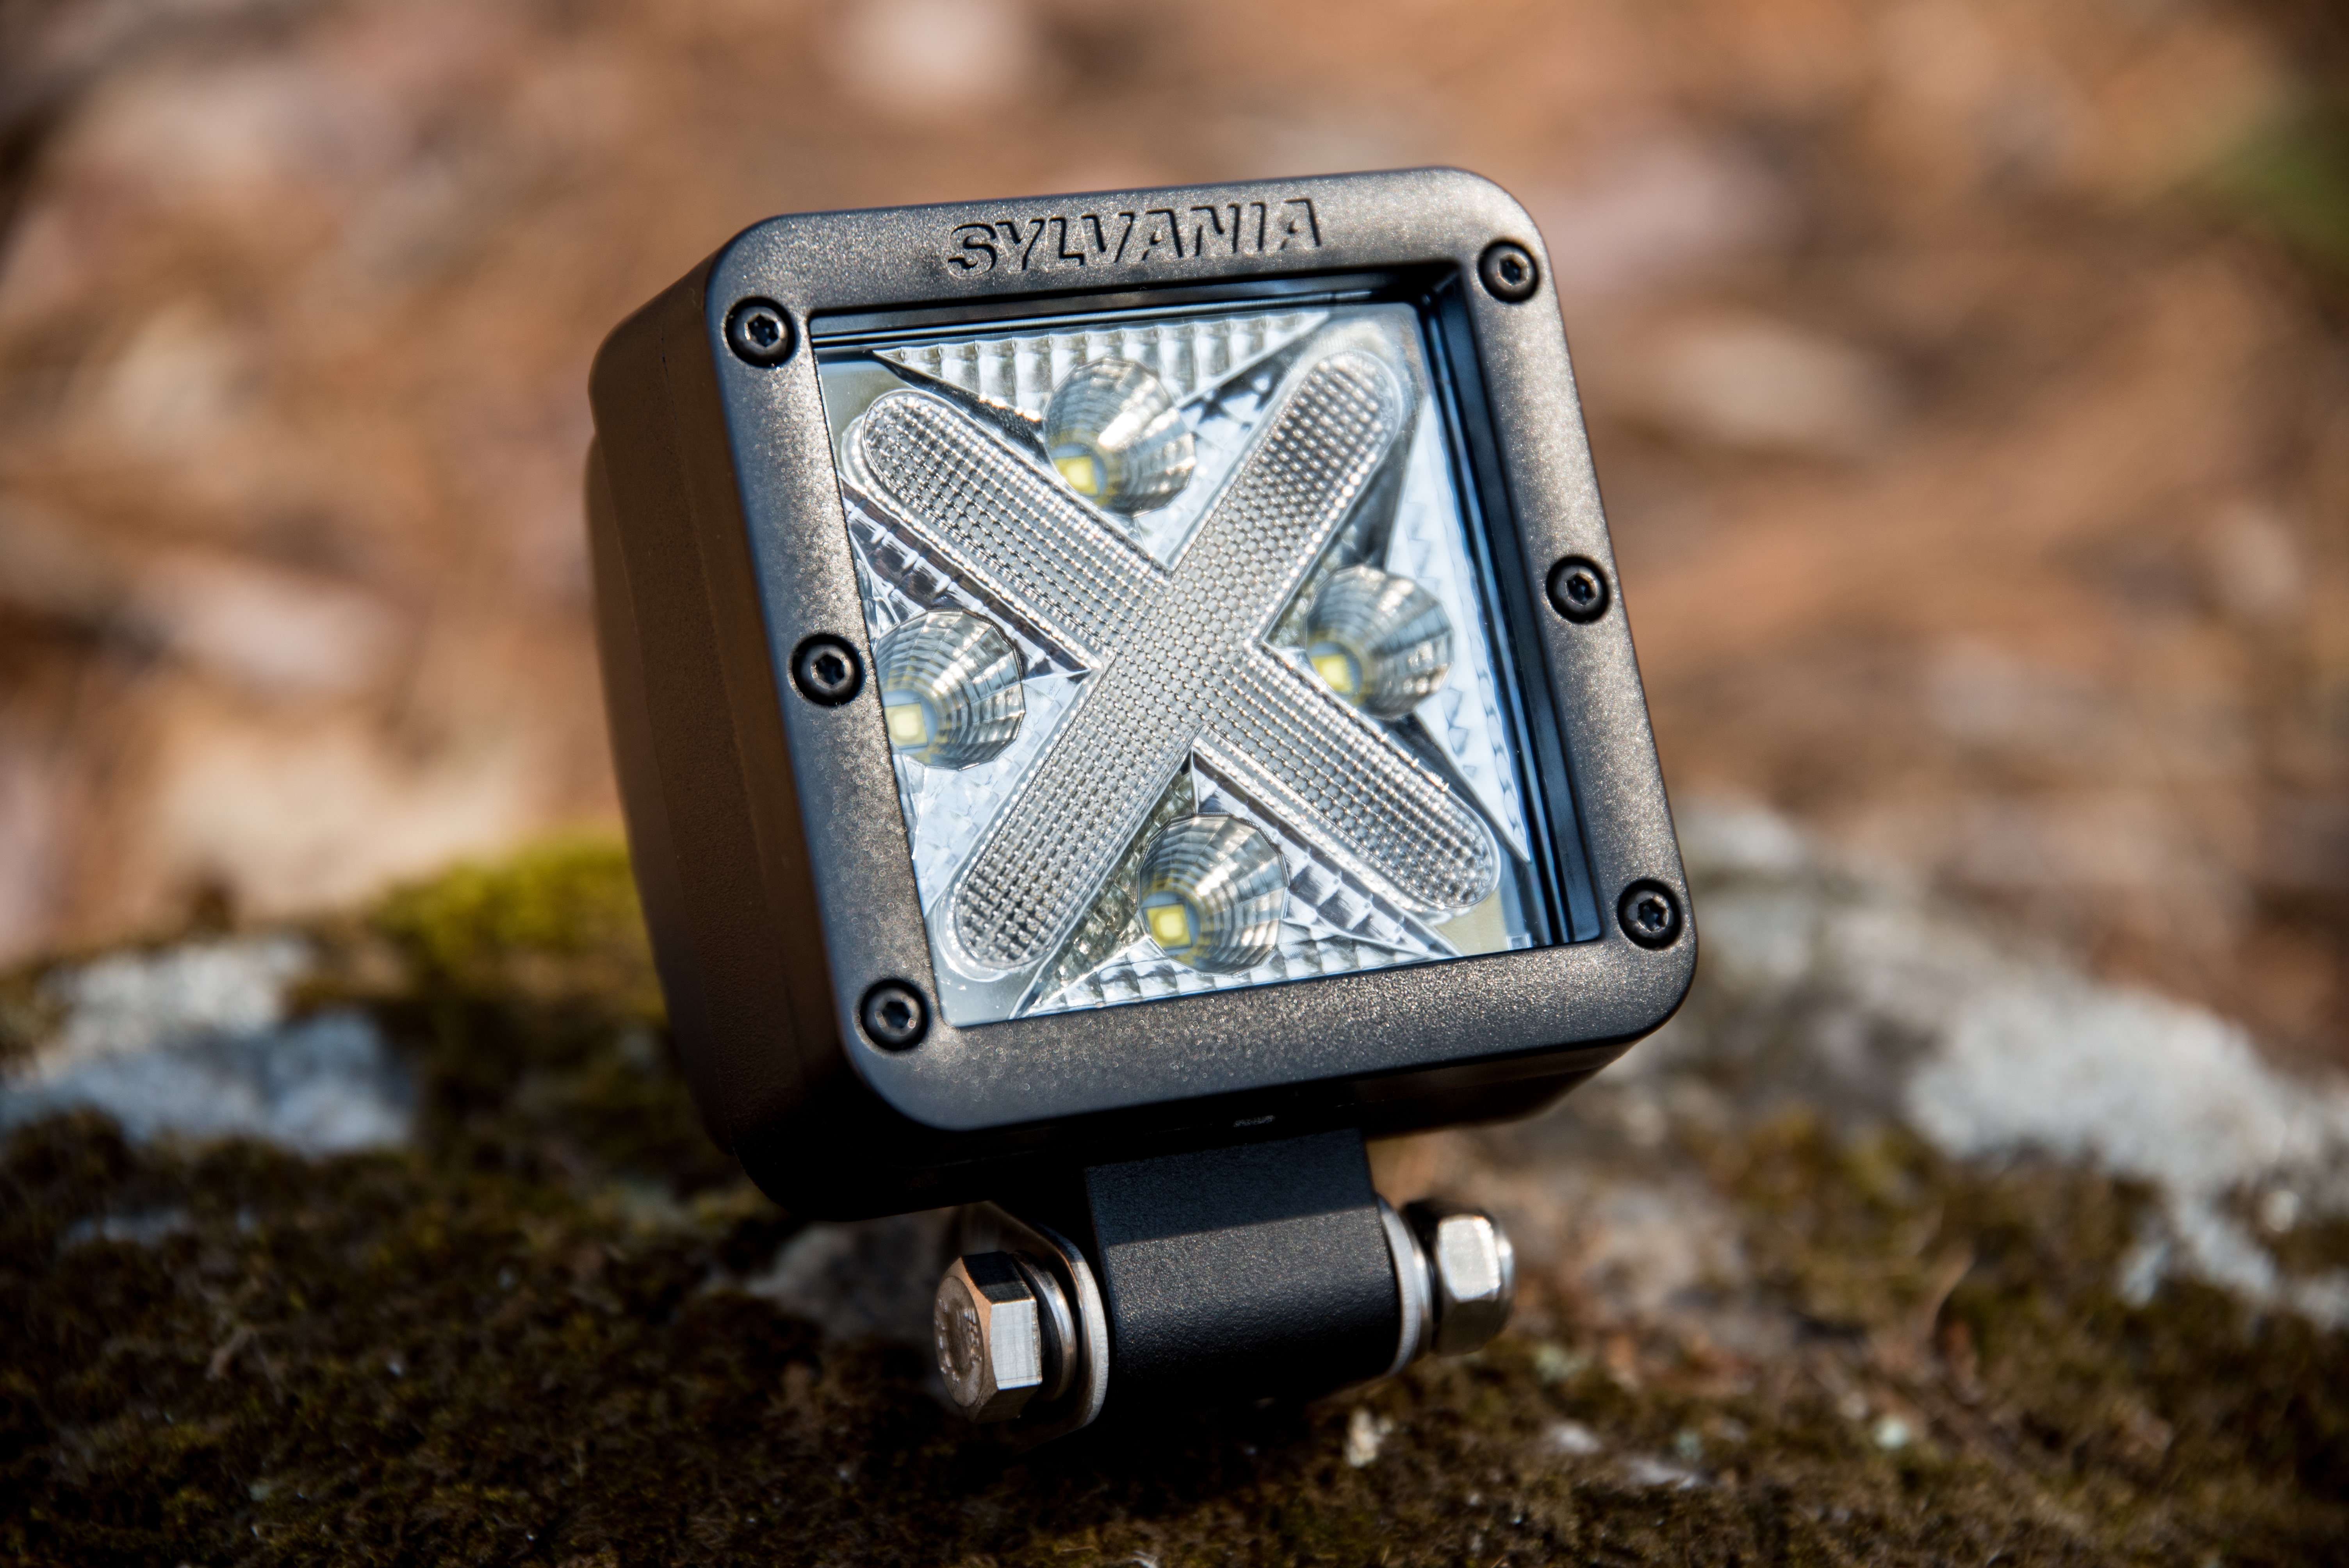 SYLVANIA Automotive Lights Up The Road Less Traveled With Cube X 2 In One |  Business Wire